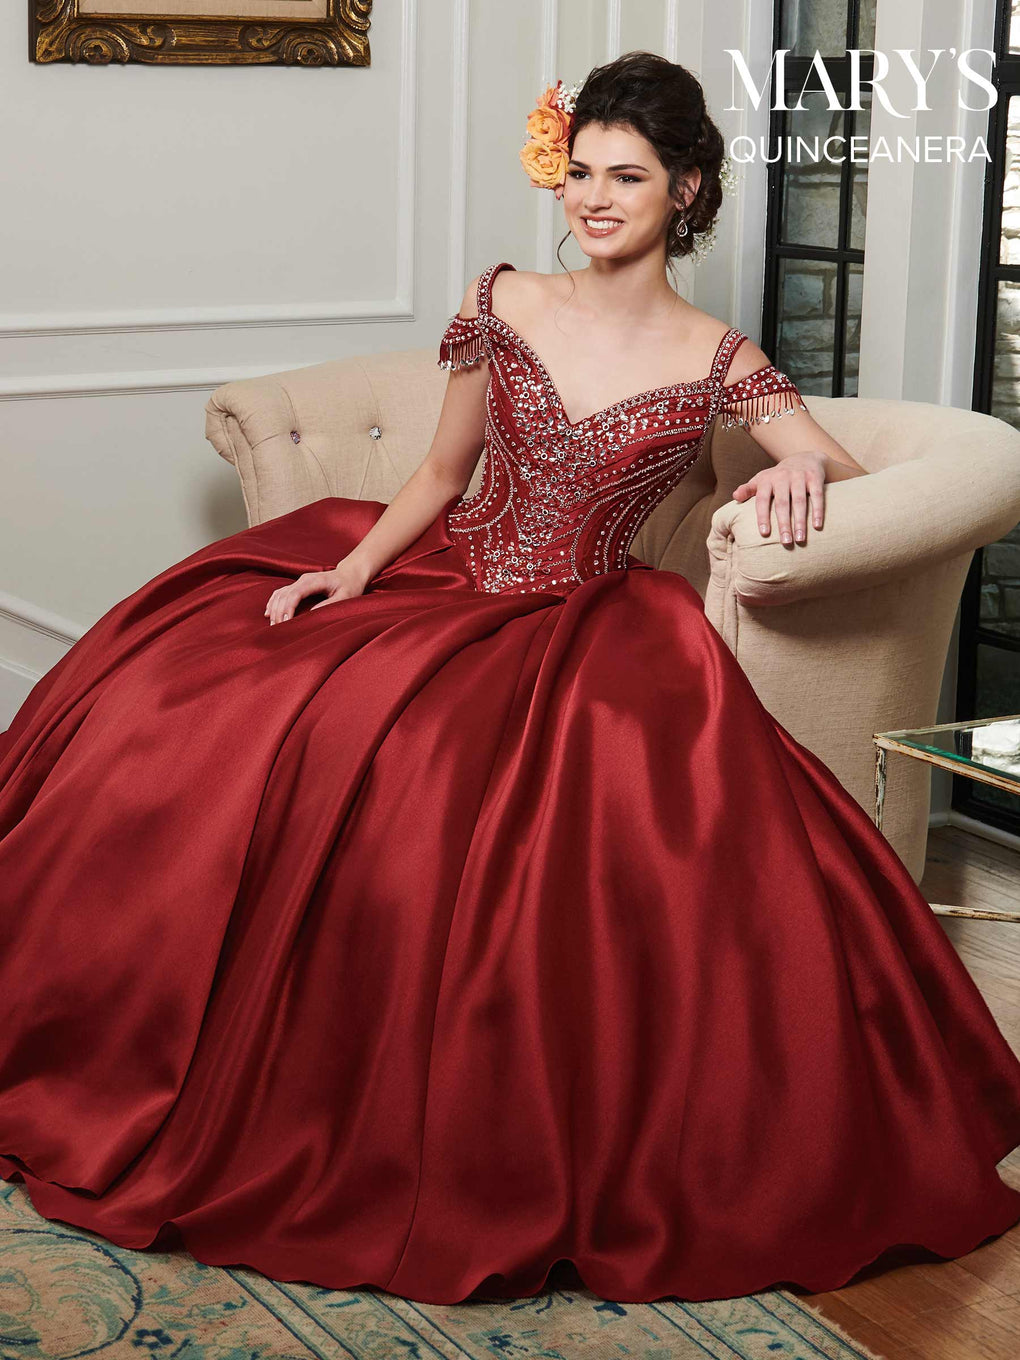 Marys Quinceanera Dresses in Champagne, Deep Red, or White Color